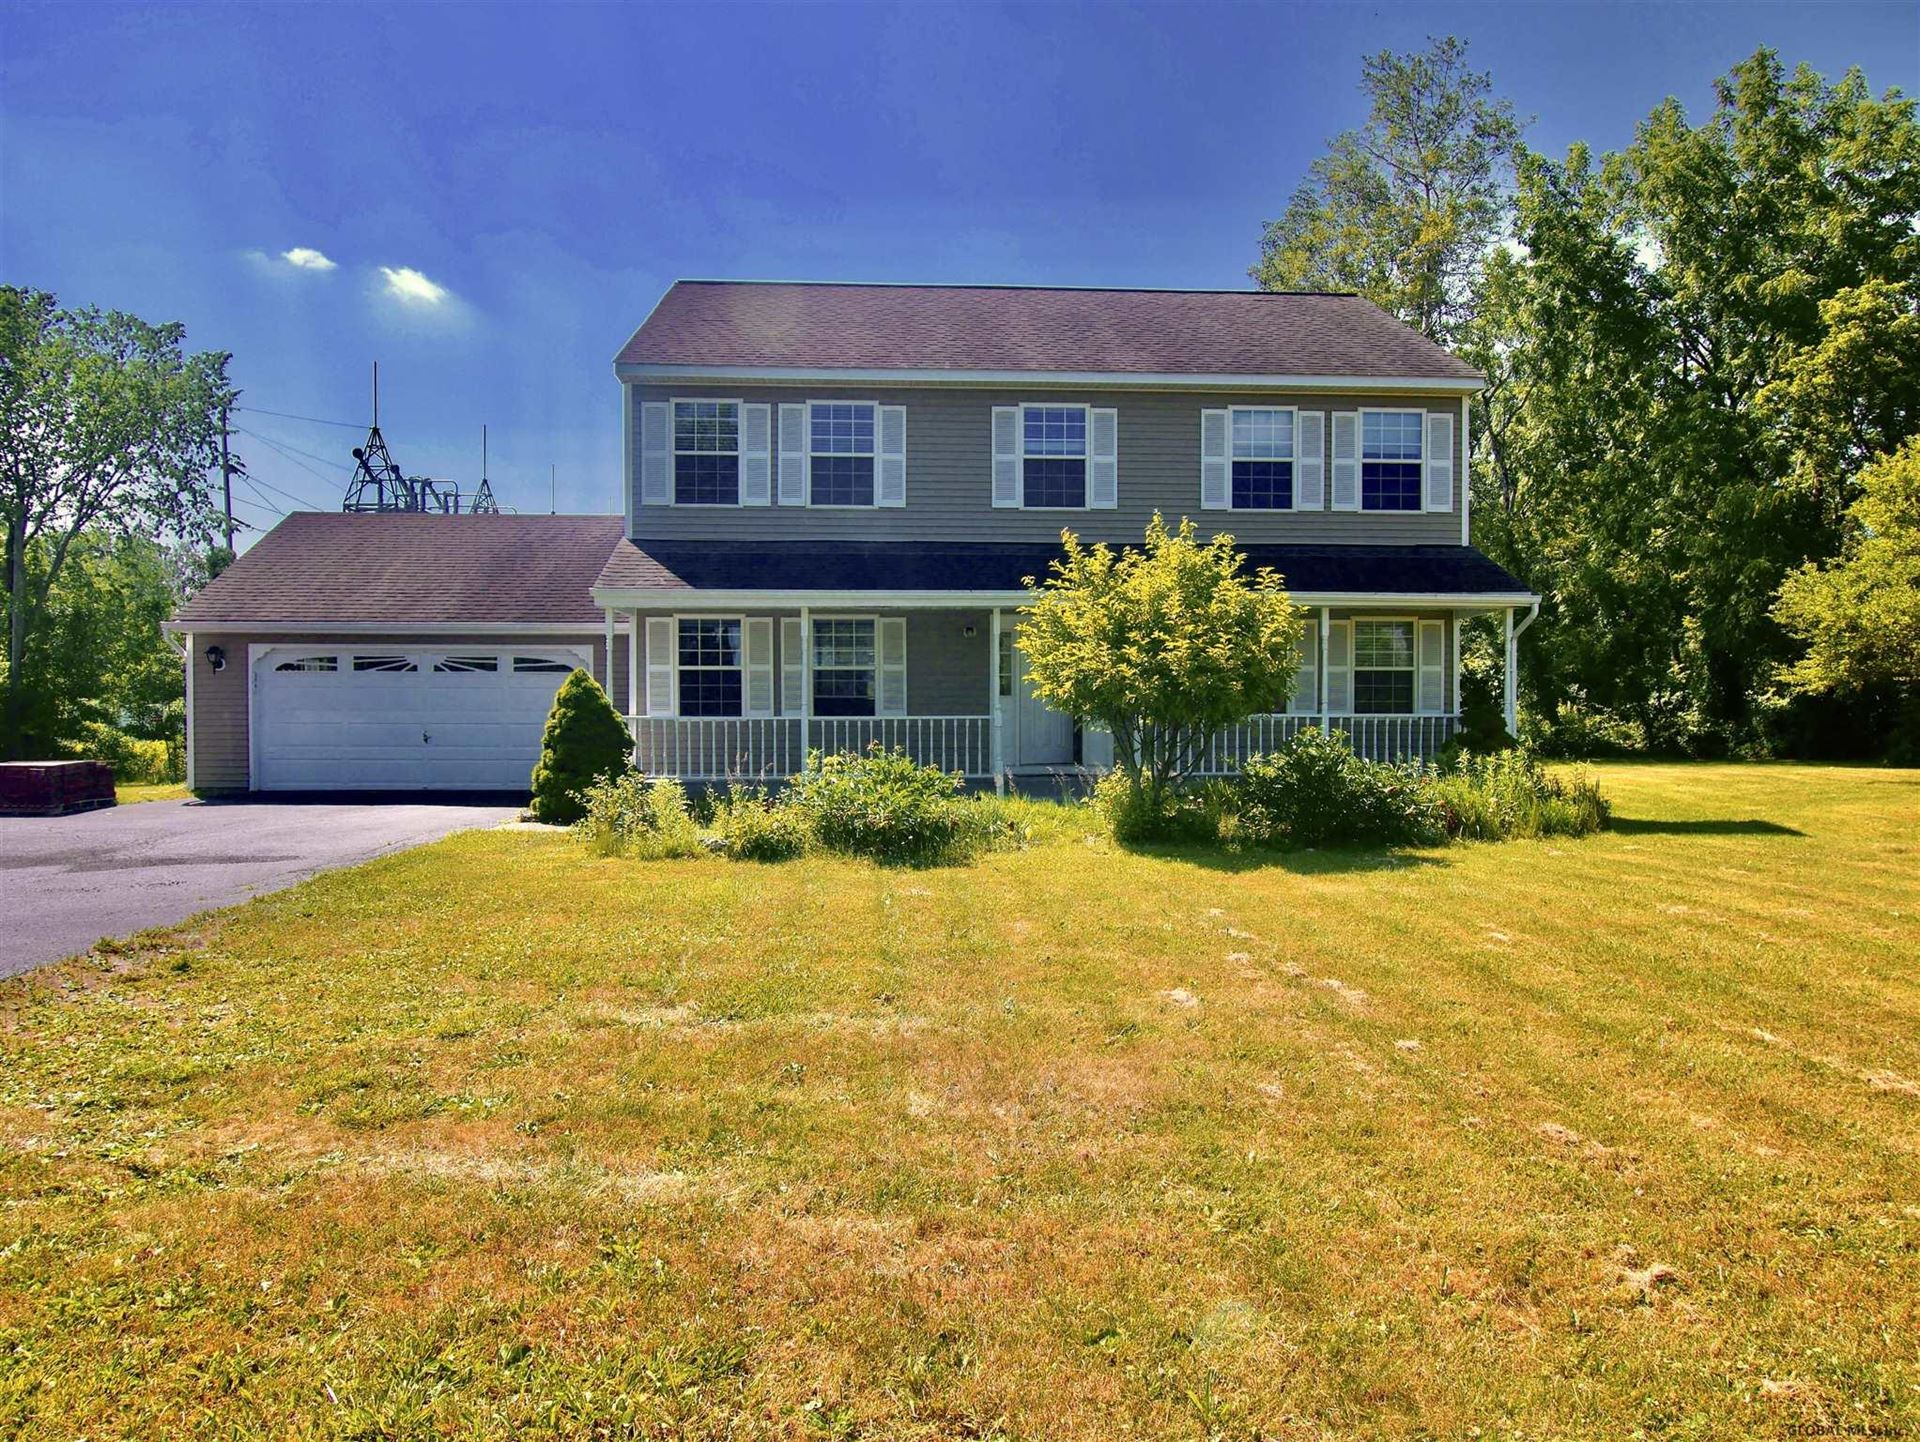 578 COLUMBIA ST EXT, Colonie, NY 12047 - #: 202122487